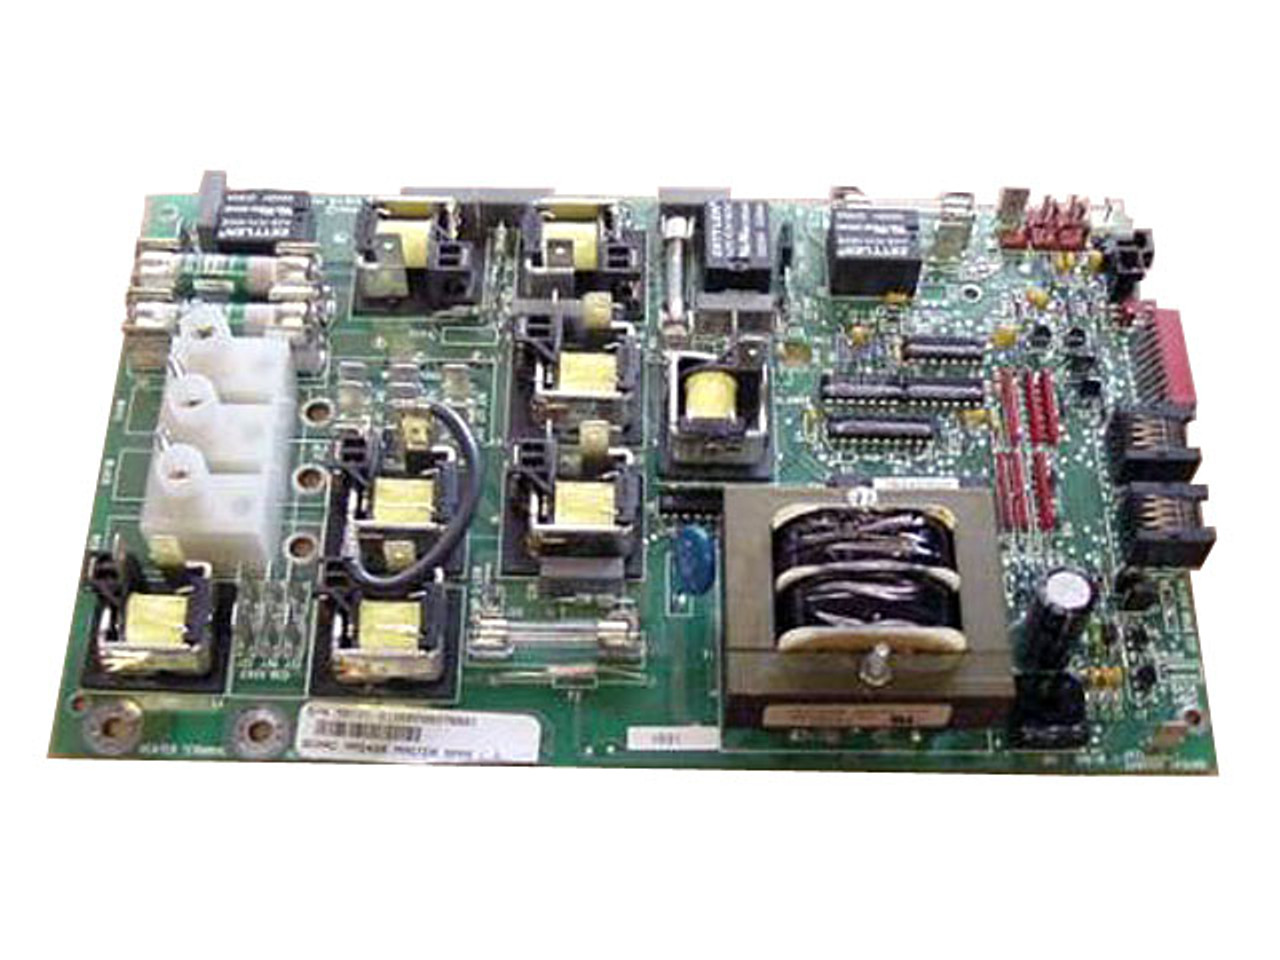 Master Spa - X801010 - Balboa Equipment MAS400 PC Circuit Board - Front View